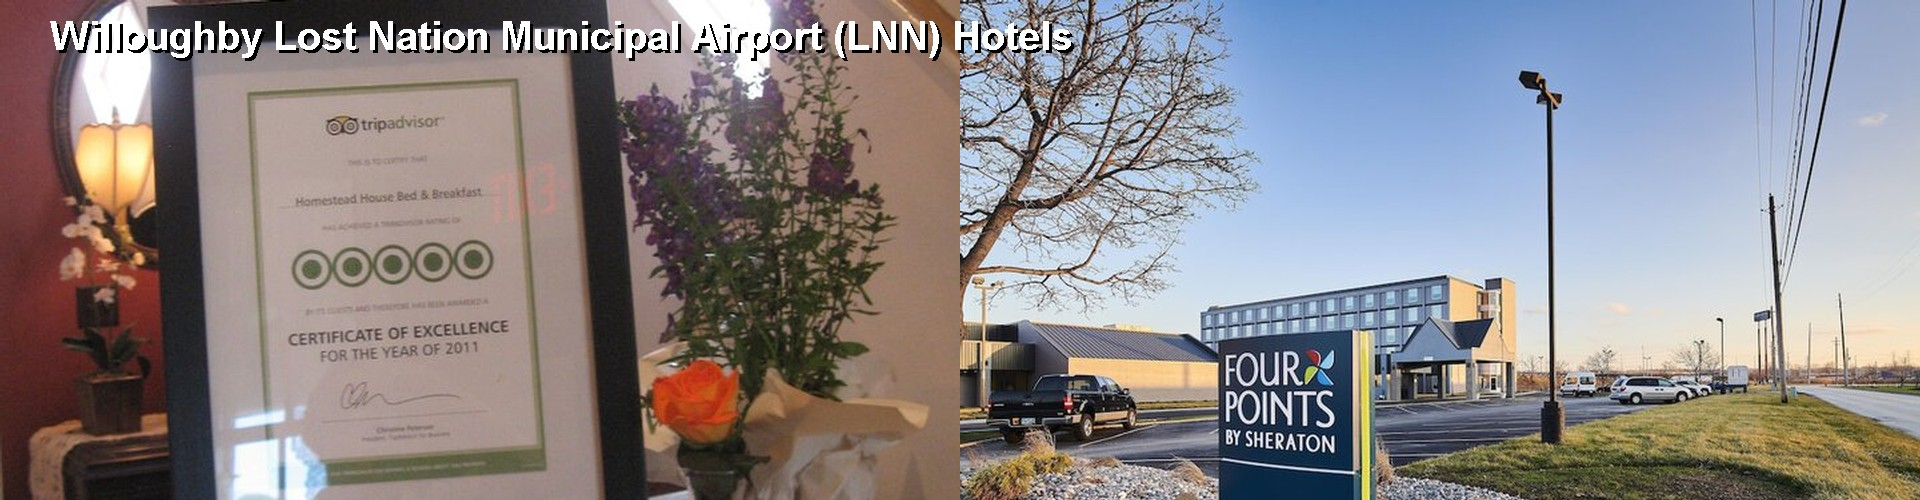 5 Best Hotels near Willoughby Lost Nation Municipal Airport (LNN)